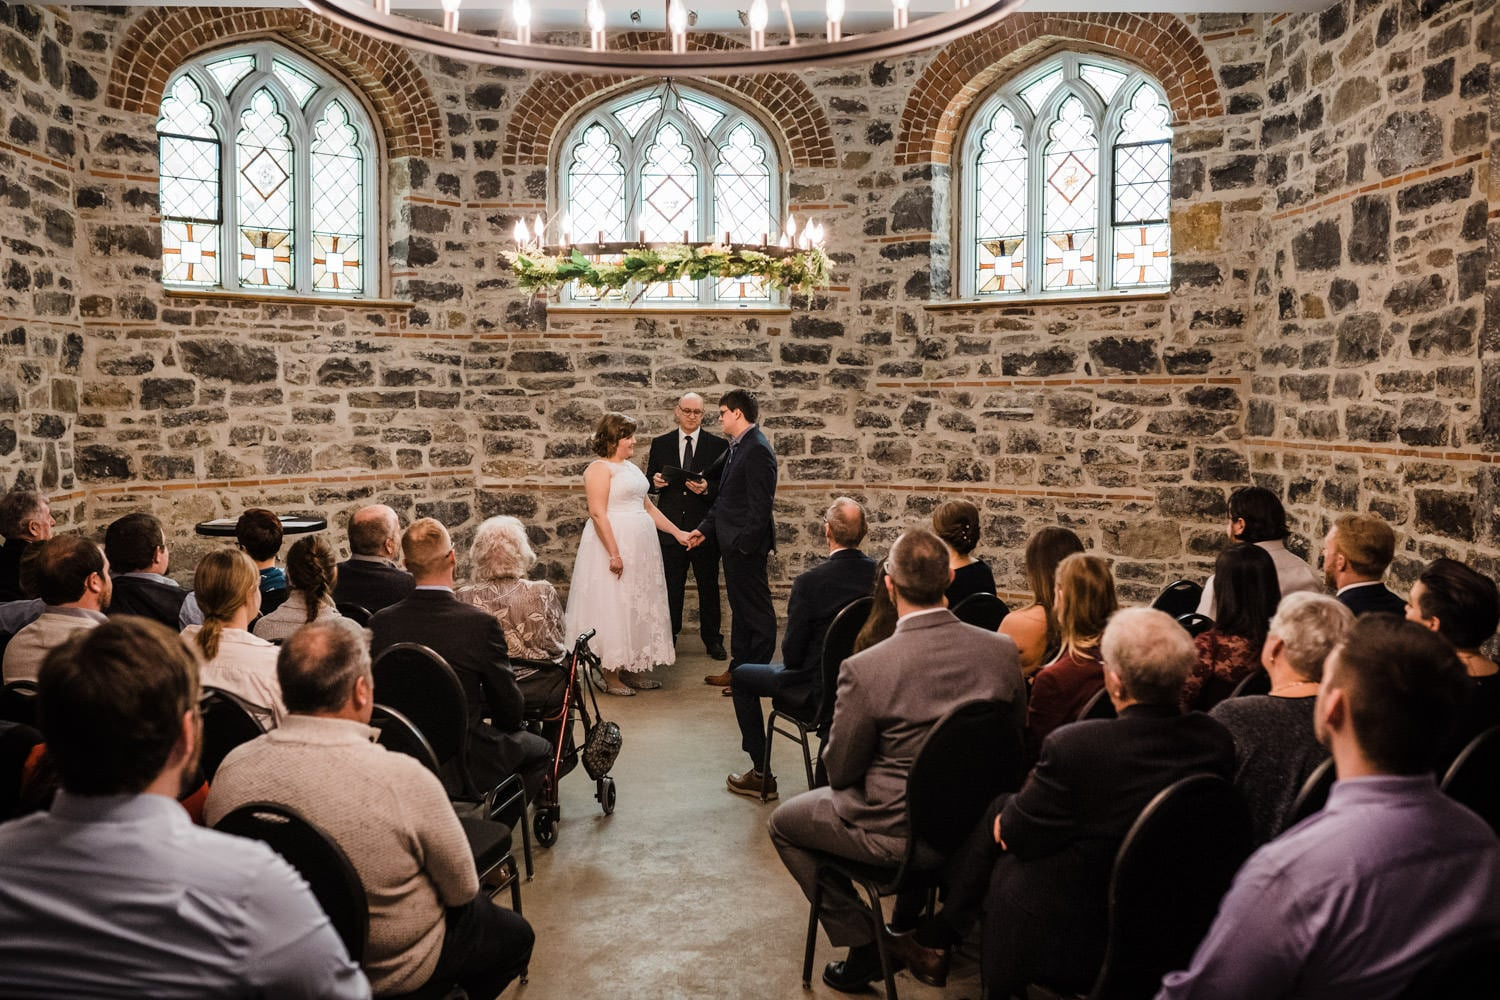 bride and groom at their intimate winter wedding ceremony